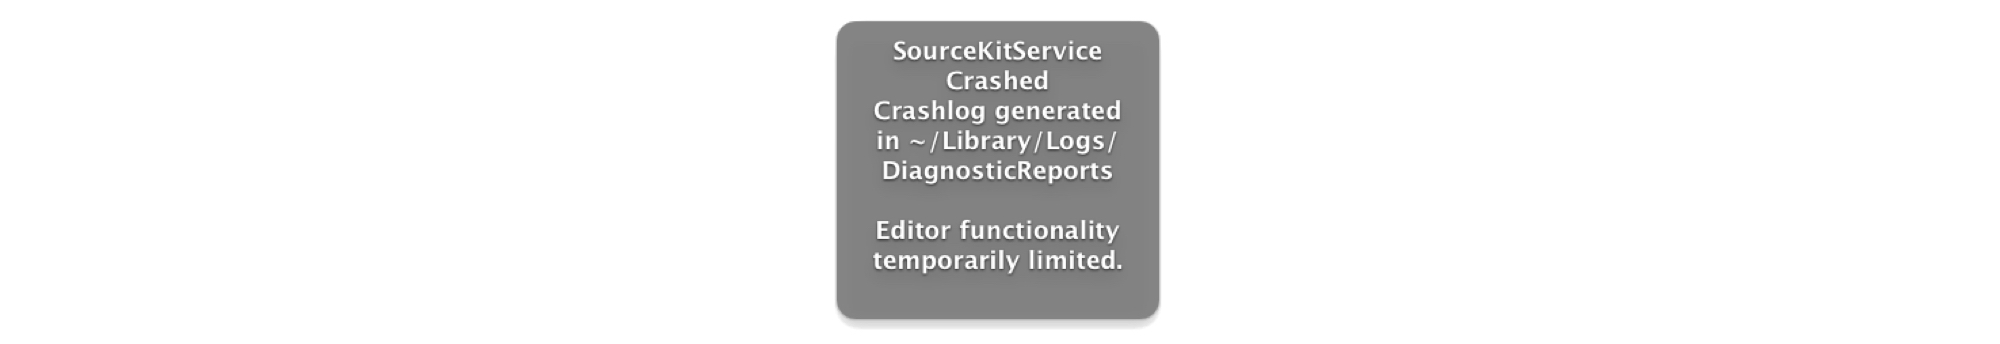 sourcekit-crash@2x